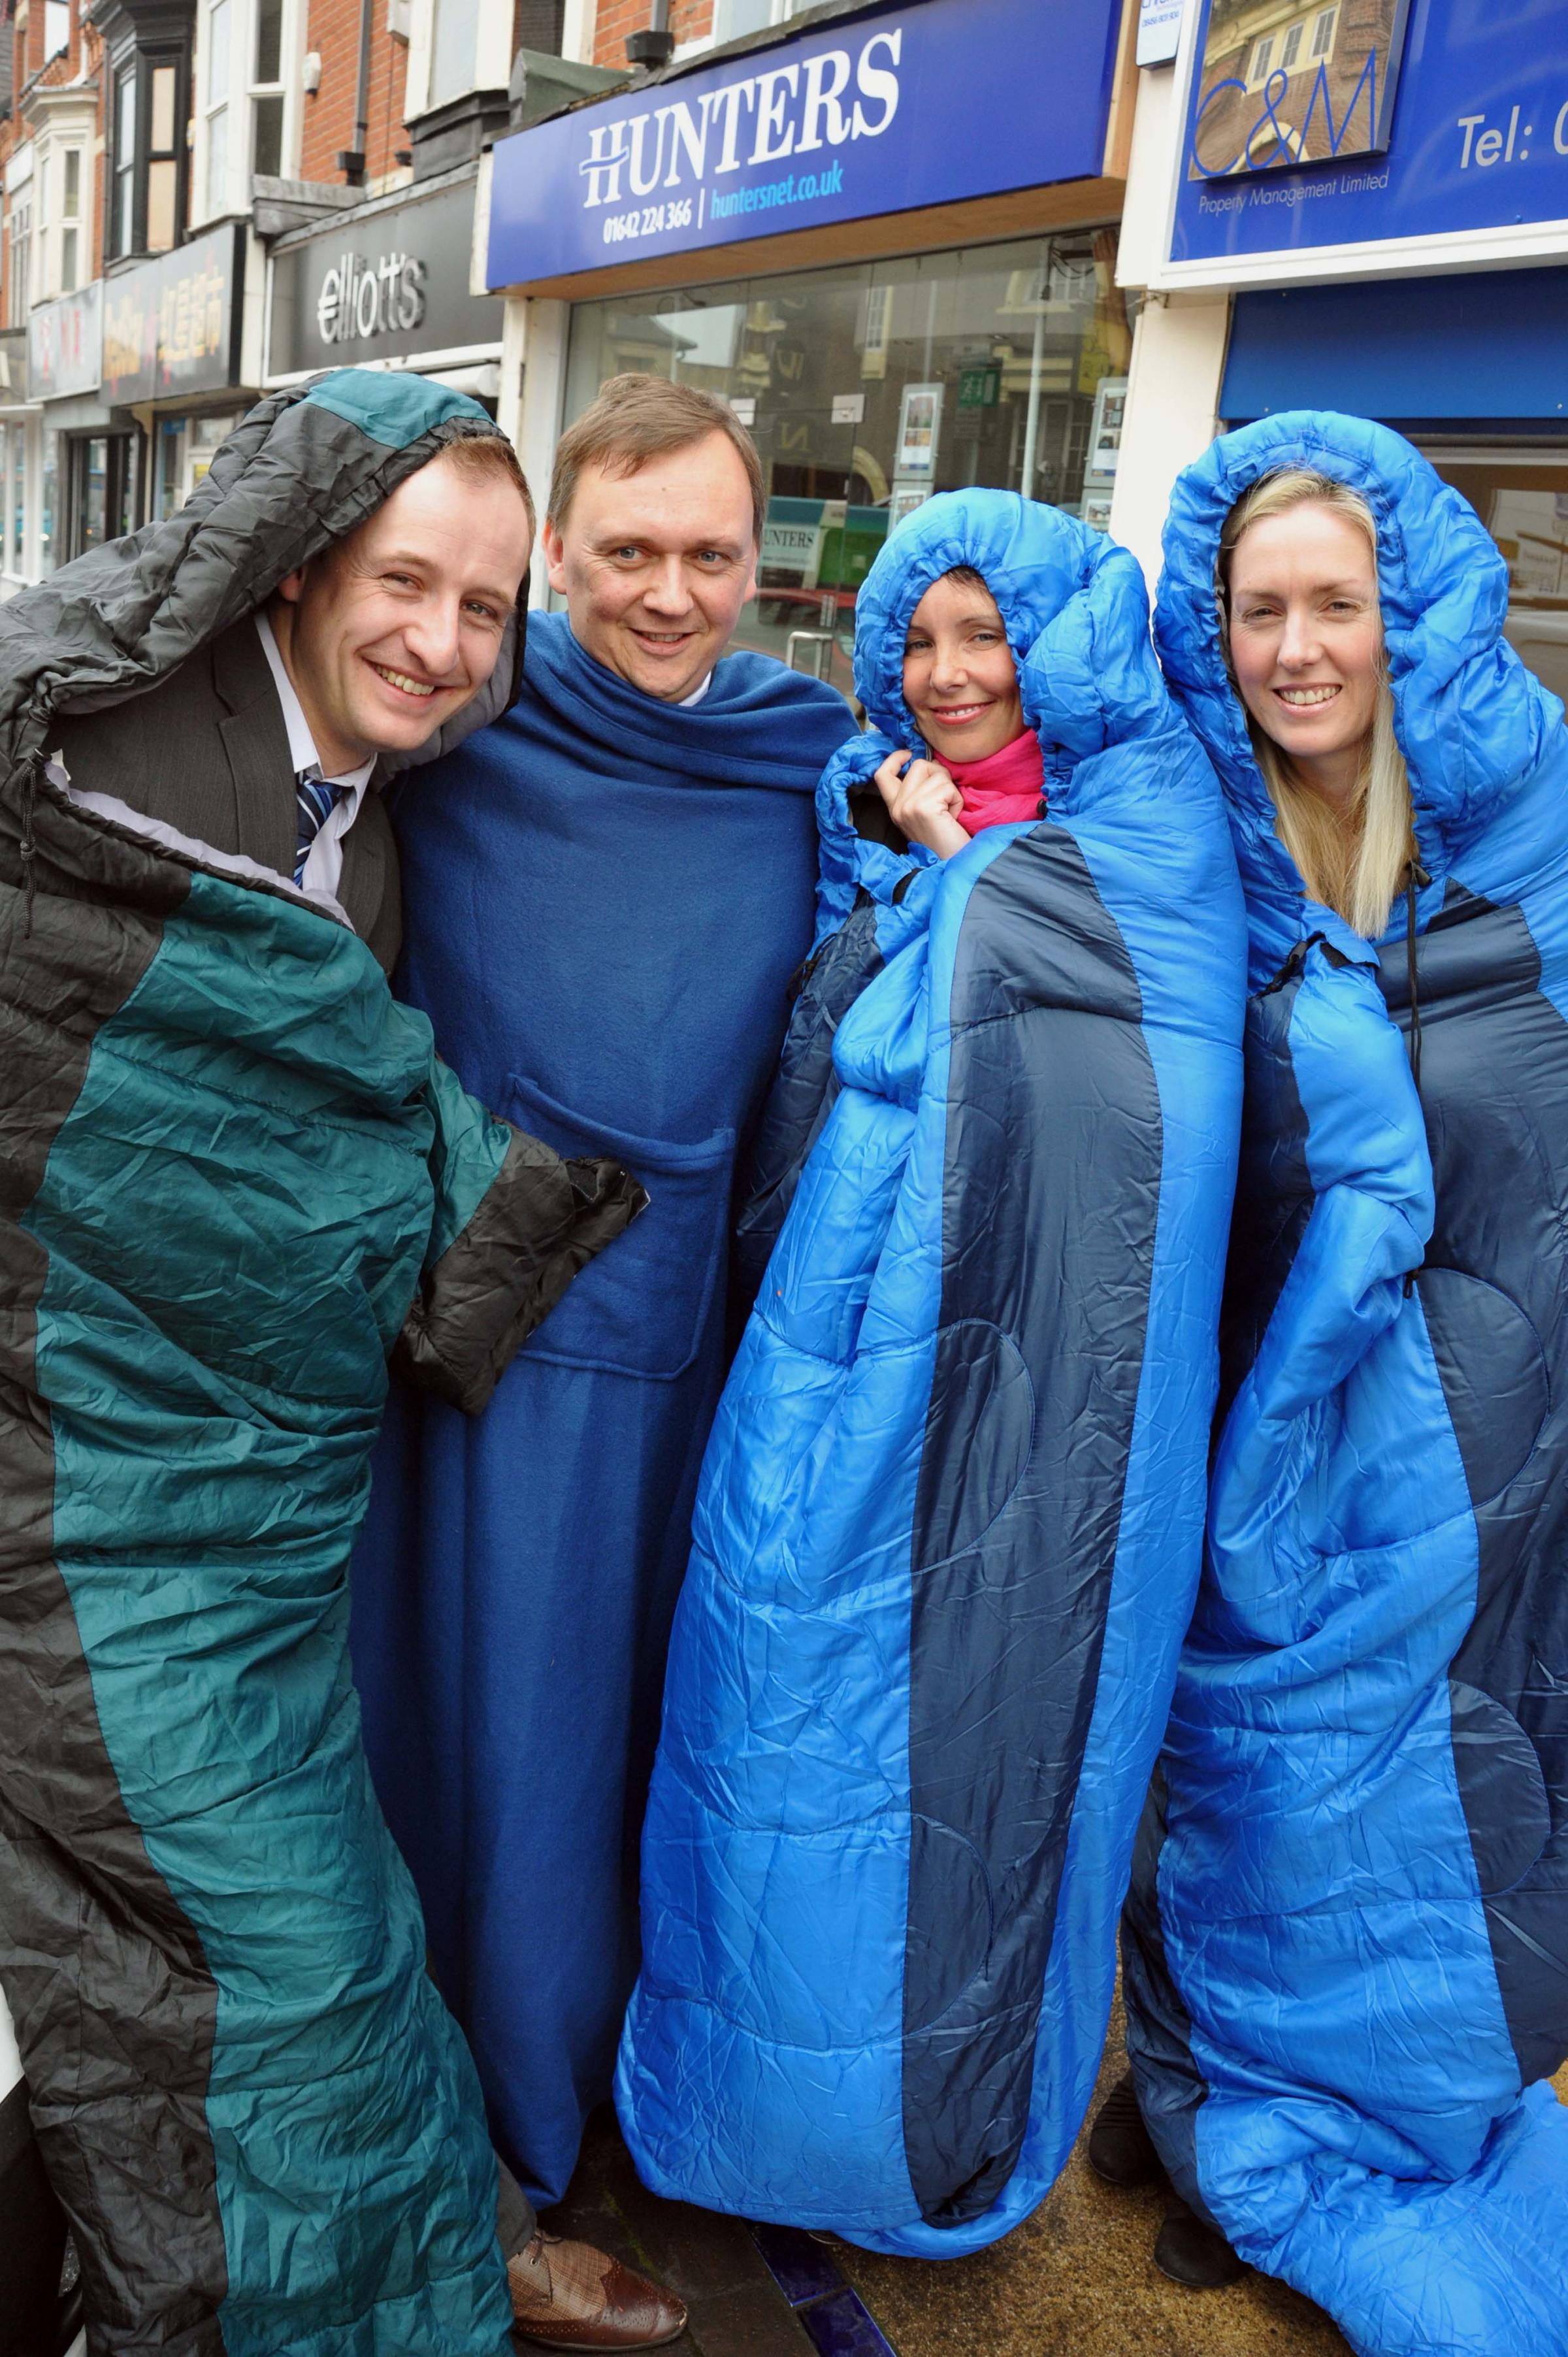 Charity challenge: Hunters' staff, from left, Brian Briddick, Steve McDonald, Lisa Preston and Georgina Eva